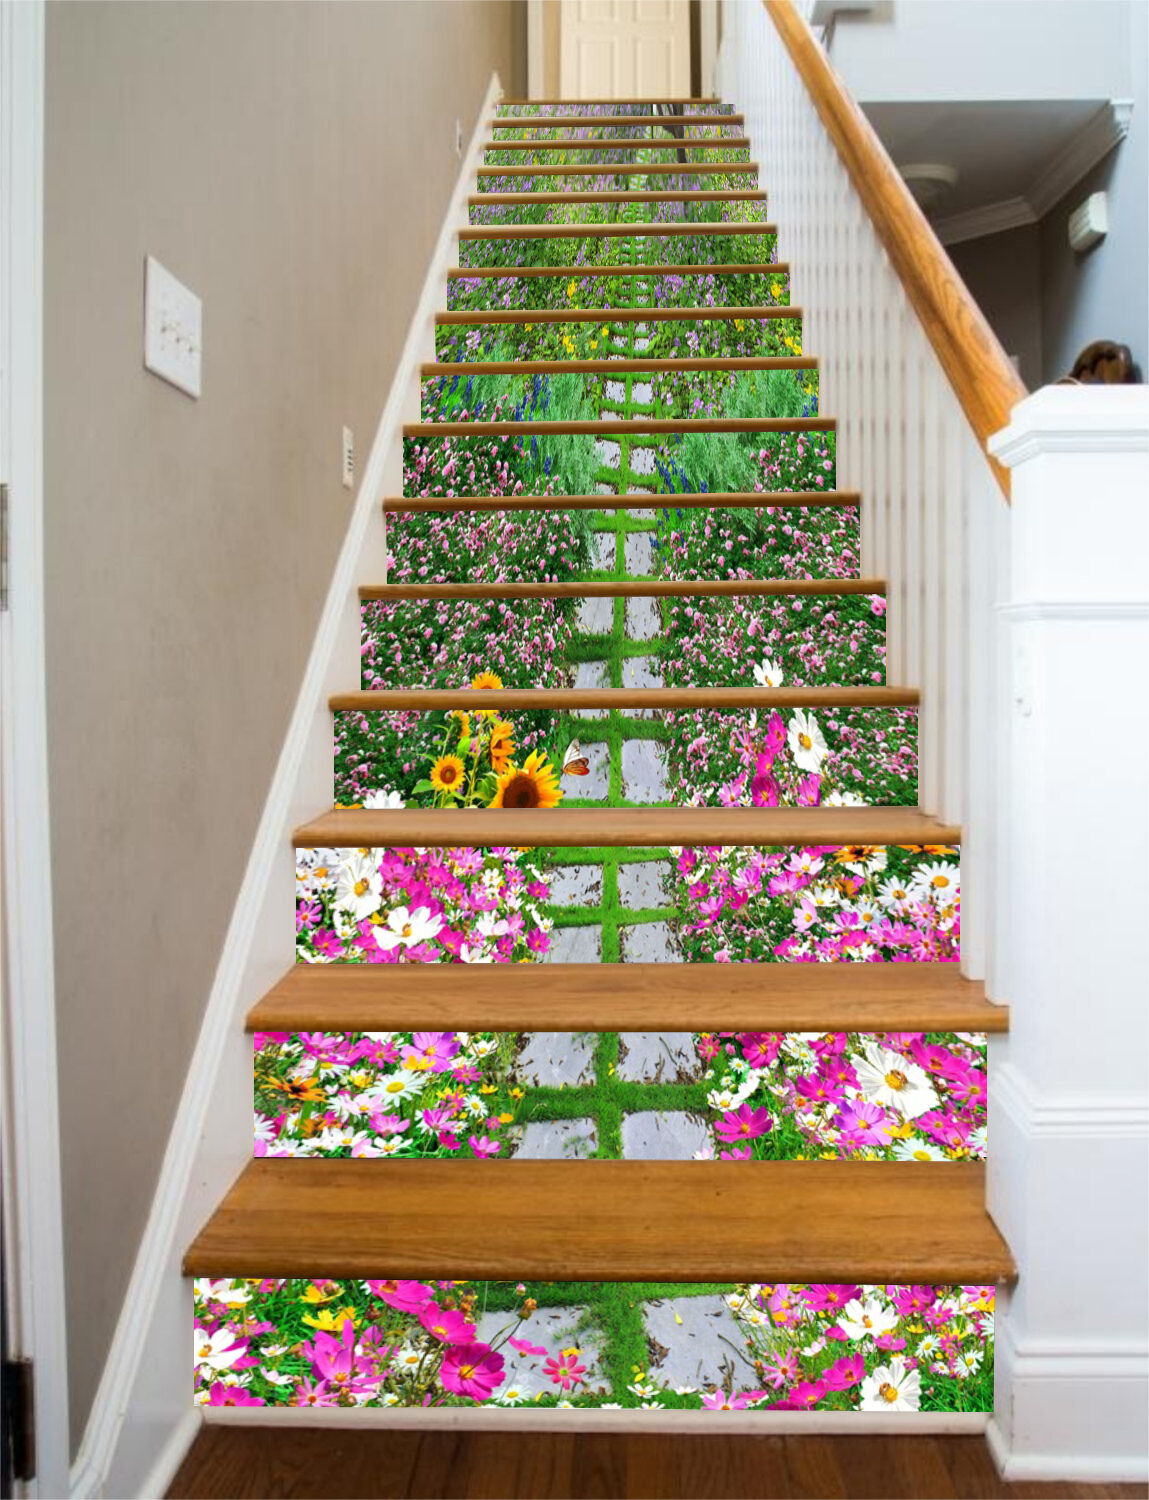 3D Road Flowers 61 Stair Risers Decoration Photo Mural Vinyl Decal Wallpaper UK